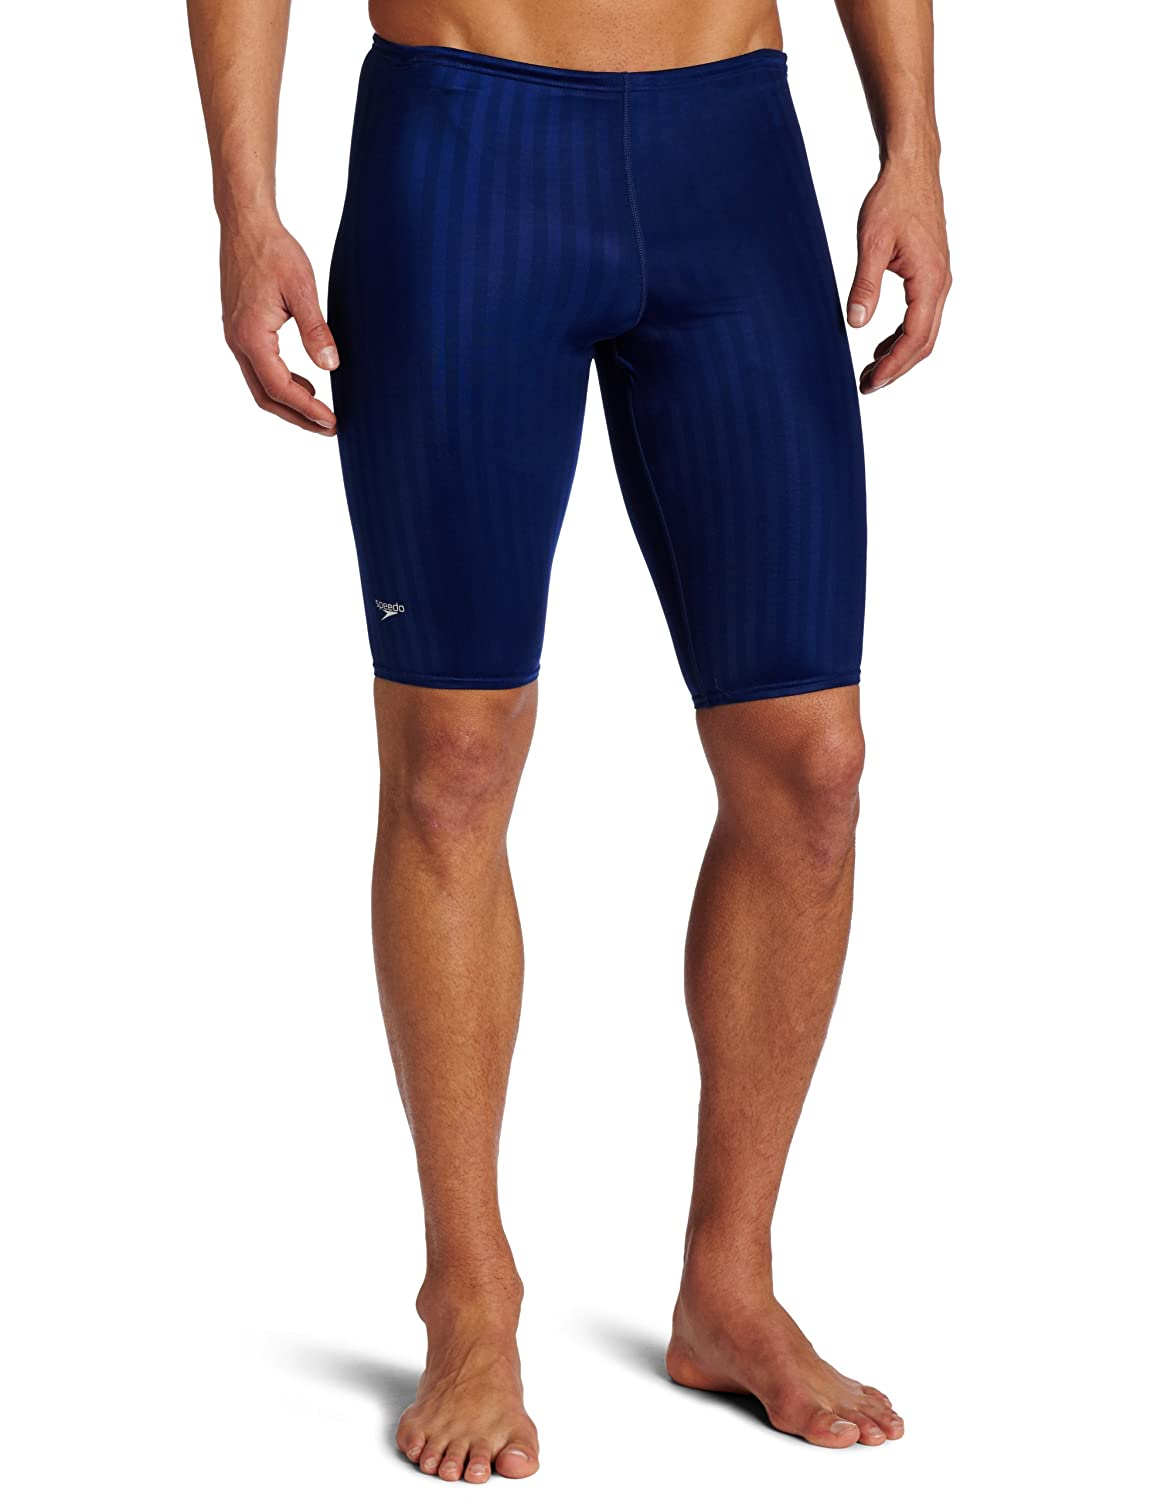 Speedo Men's Aquablade Jammer Swimsuit 705032